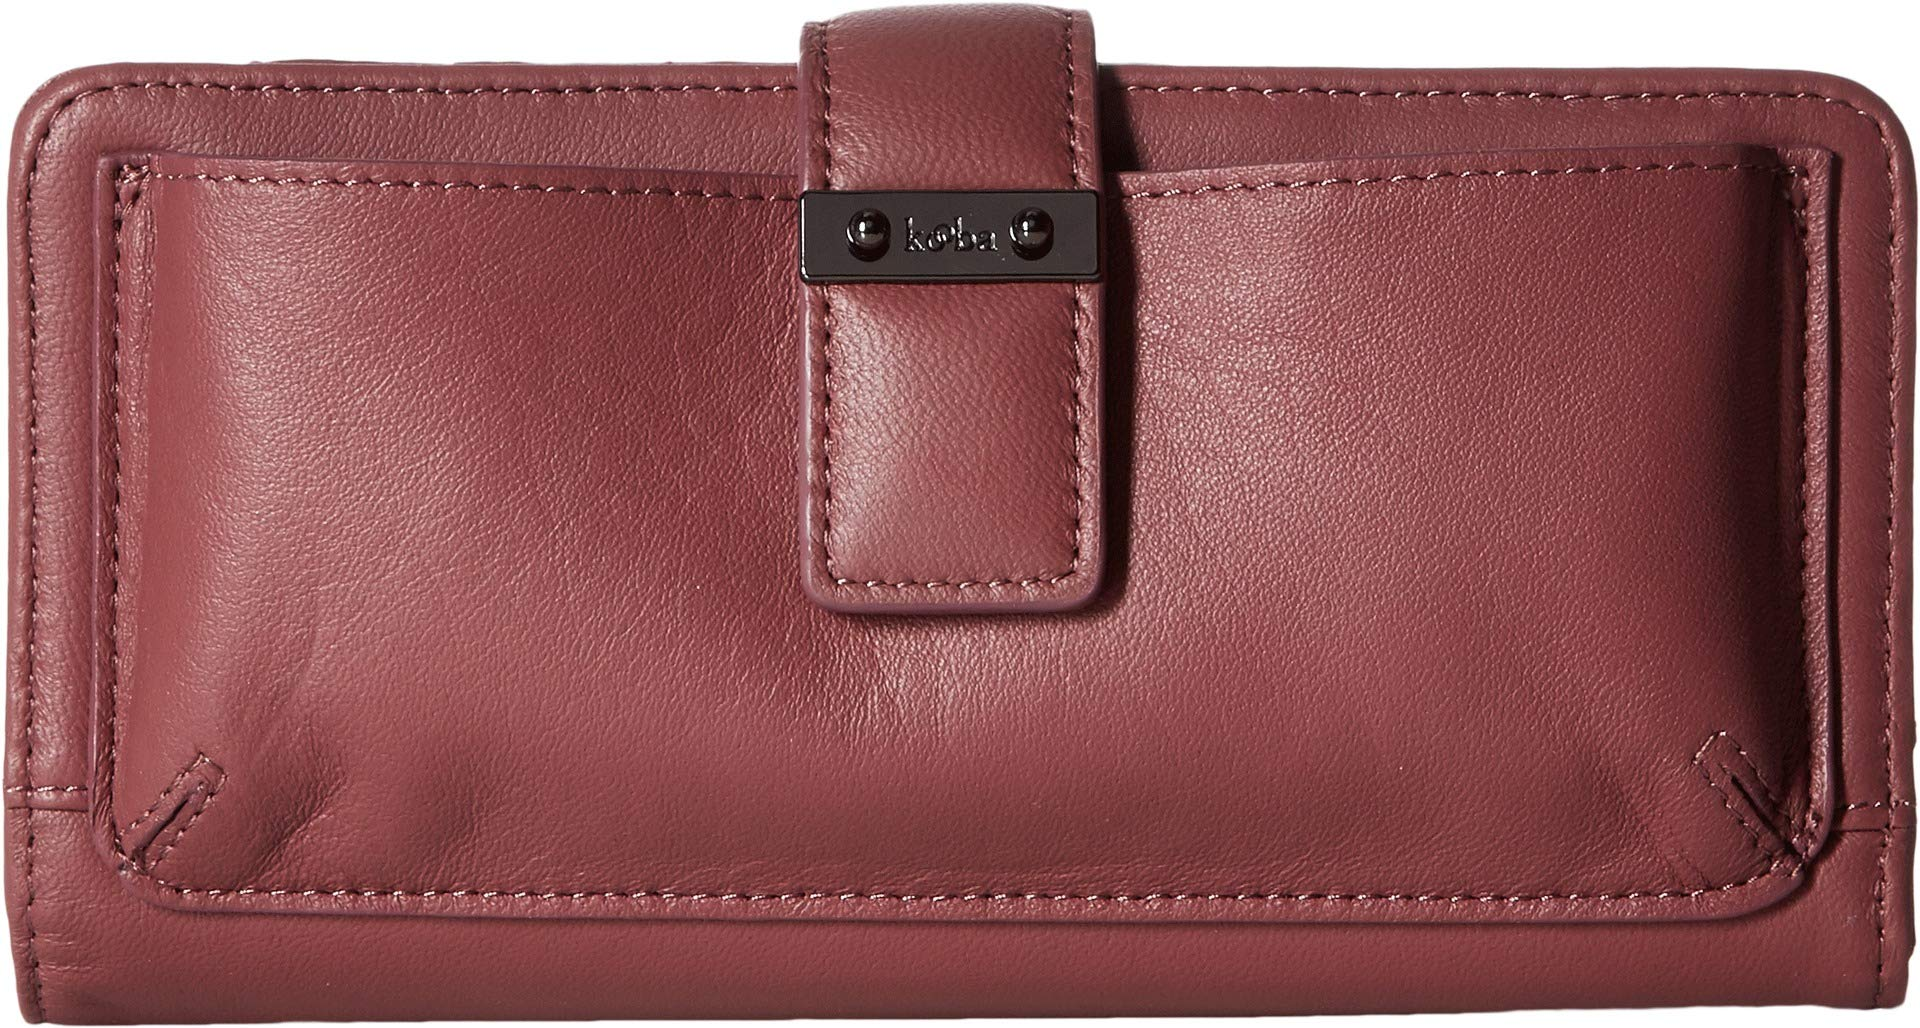 Kooba Women's Cupertino Cell Wallet Orchid One Size